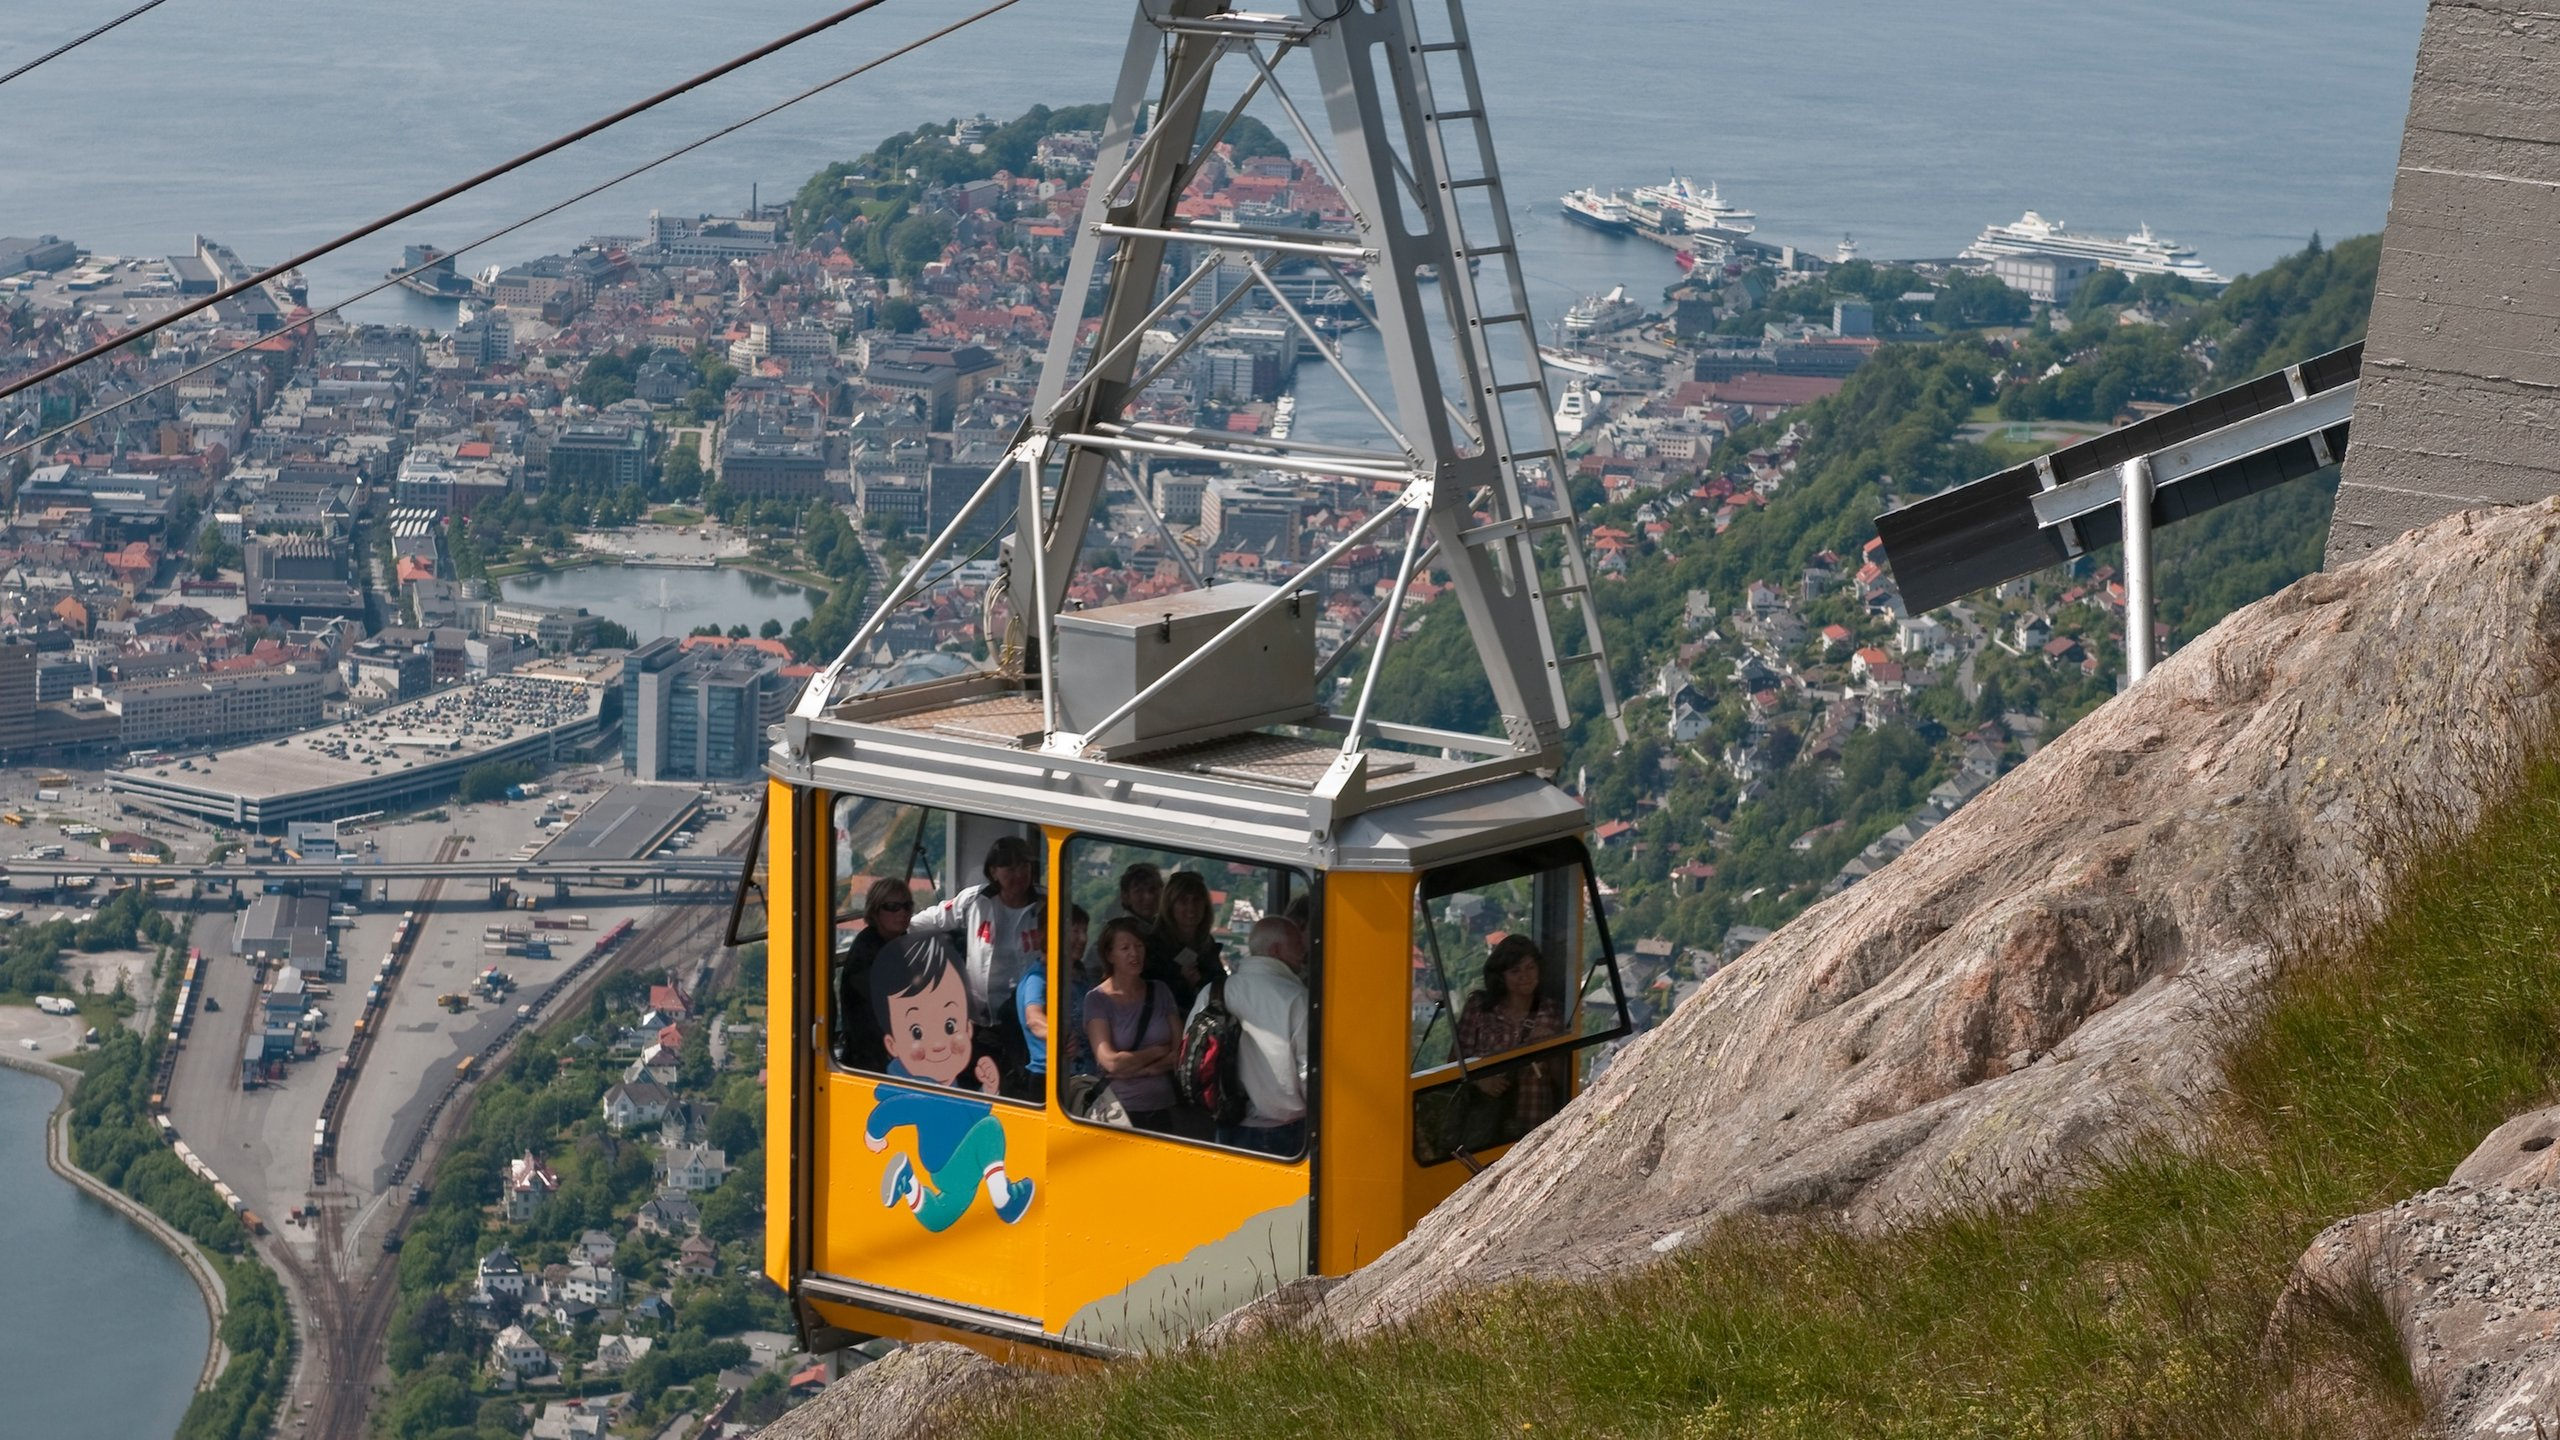 Make the journey up Bergen's highest mountain to hike, dine and enjoy incredible panoramas across the mountains, fjords and sea.